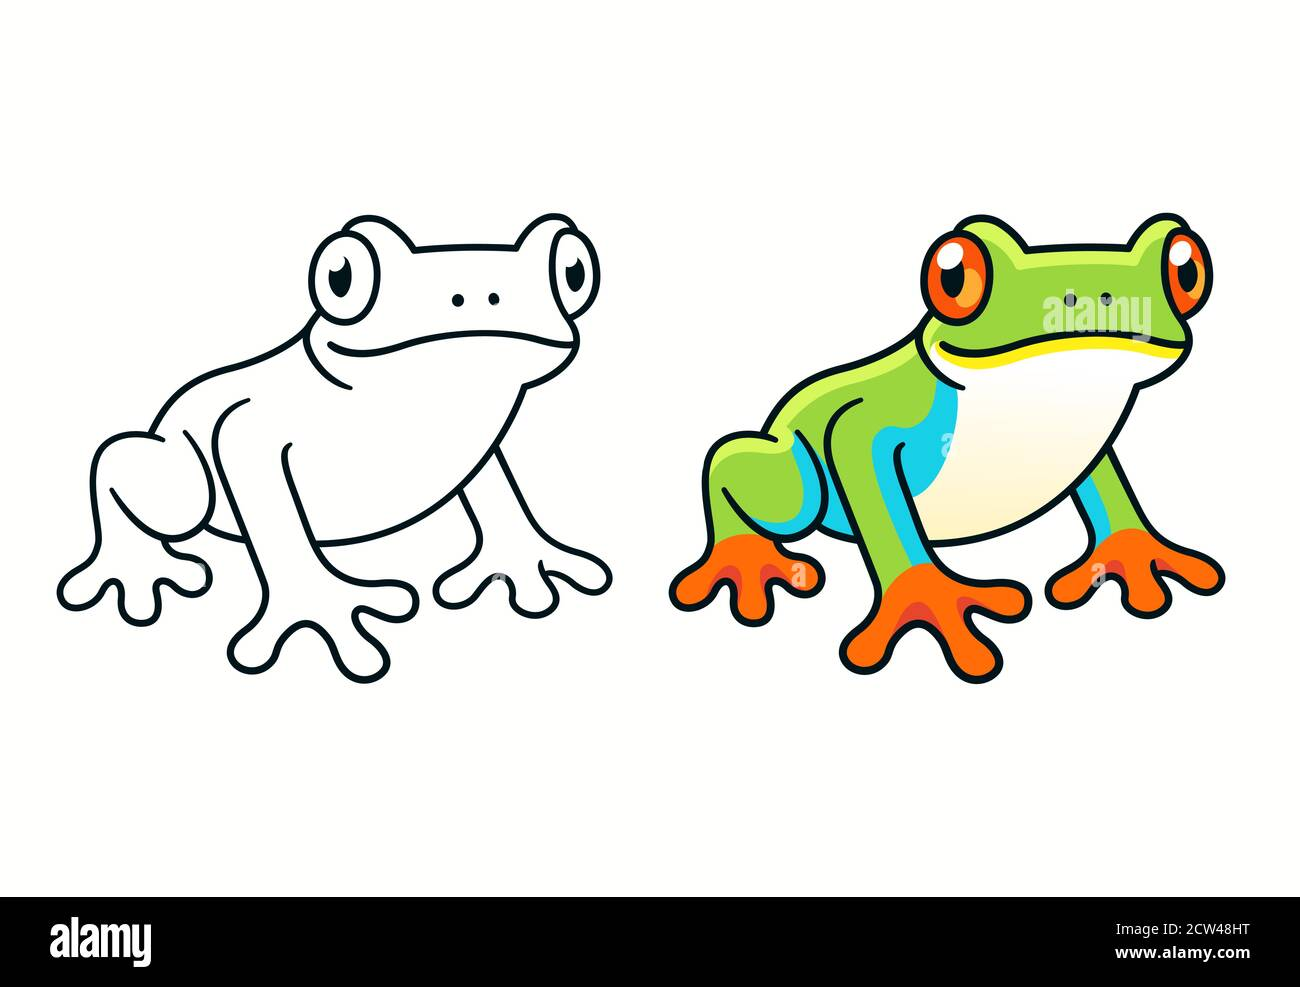 Red Eyed Tree Frog Cute Cartoon Illustration Of Central American Rainforest Frog In The Wild Stock Vector Image Art Alamy Photoshop cs5 autodesk sketchbook pro <3. https www alamy com red eyed tree frog cute cartoon illustration of central american rainforest frog in the wild image376878708 html